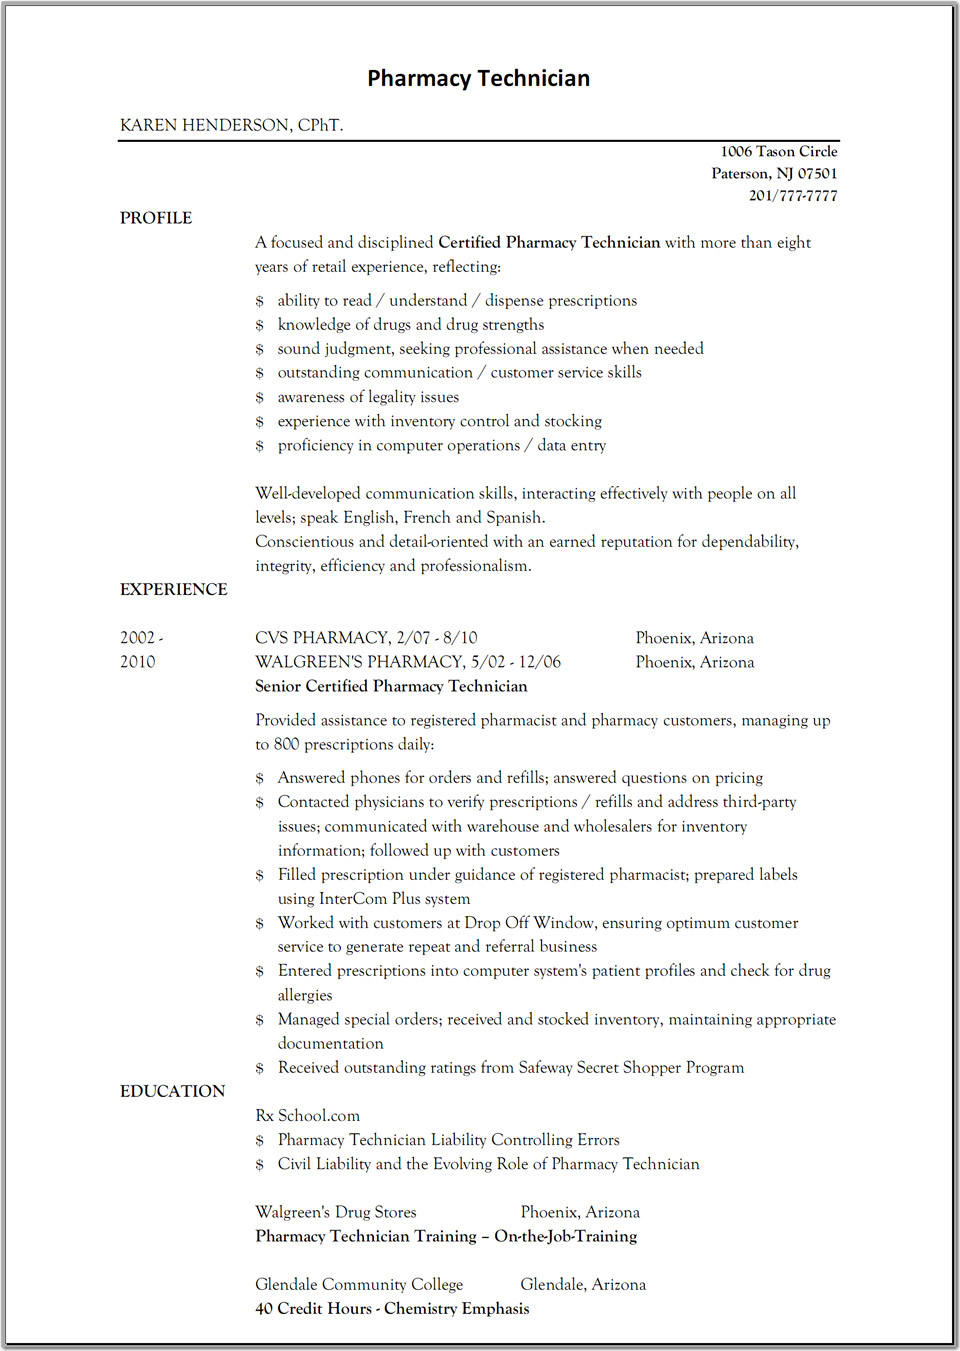 Health Services Manager Resume Customer Service Representative Resume  Sample Example Healthcare Customer Service Representative Sample Resume  Customer Service Skills Examples